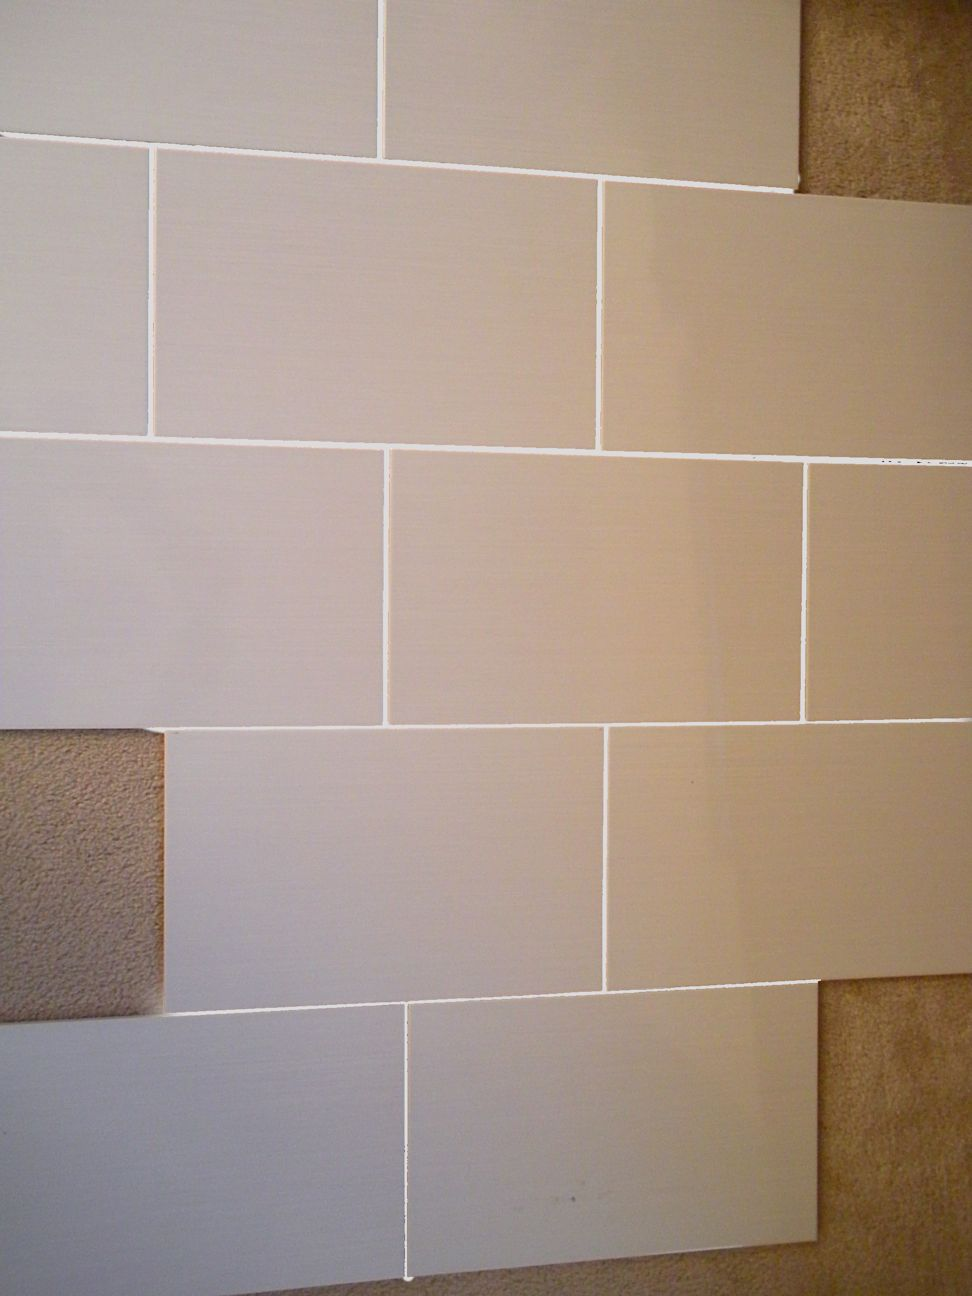 Are all grouts equal?-image1.jpg